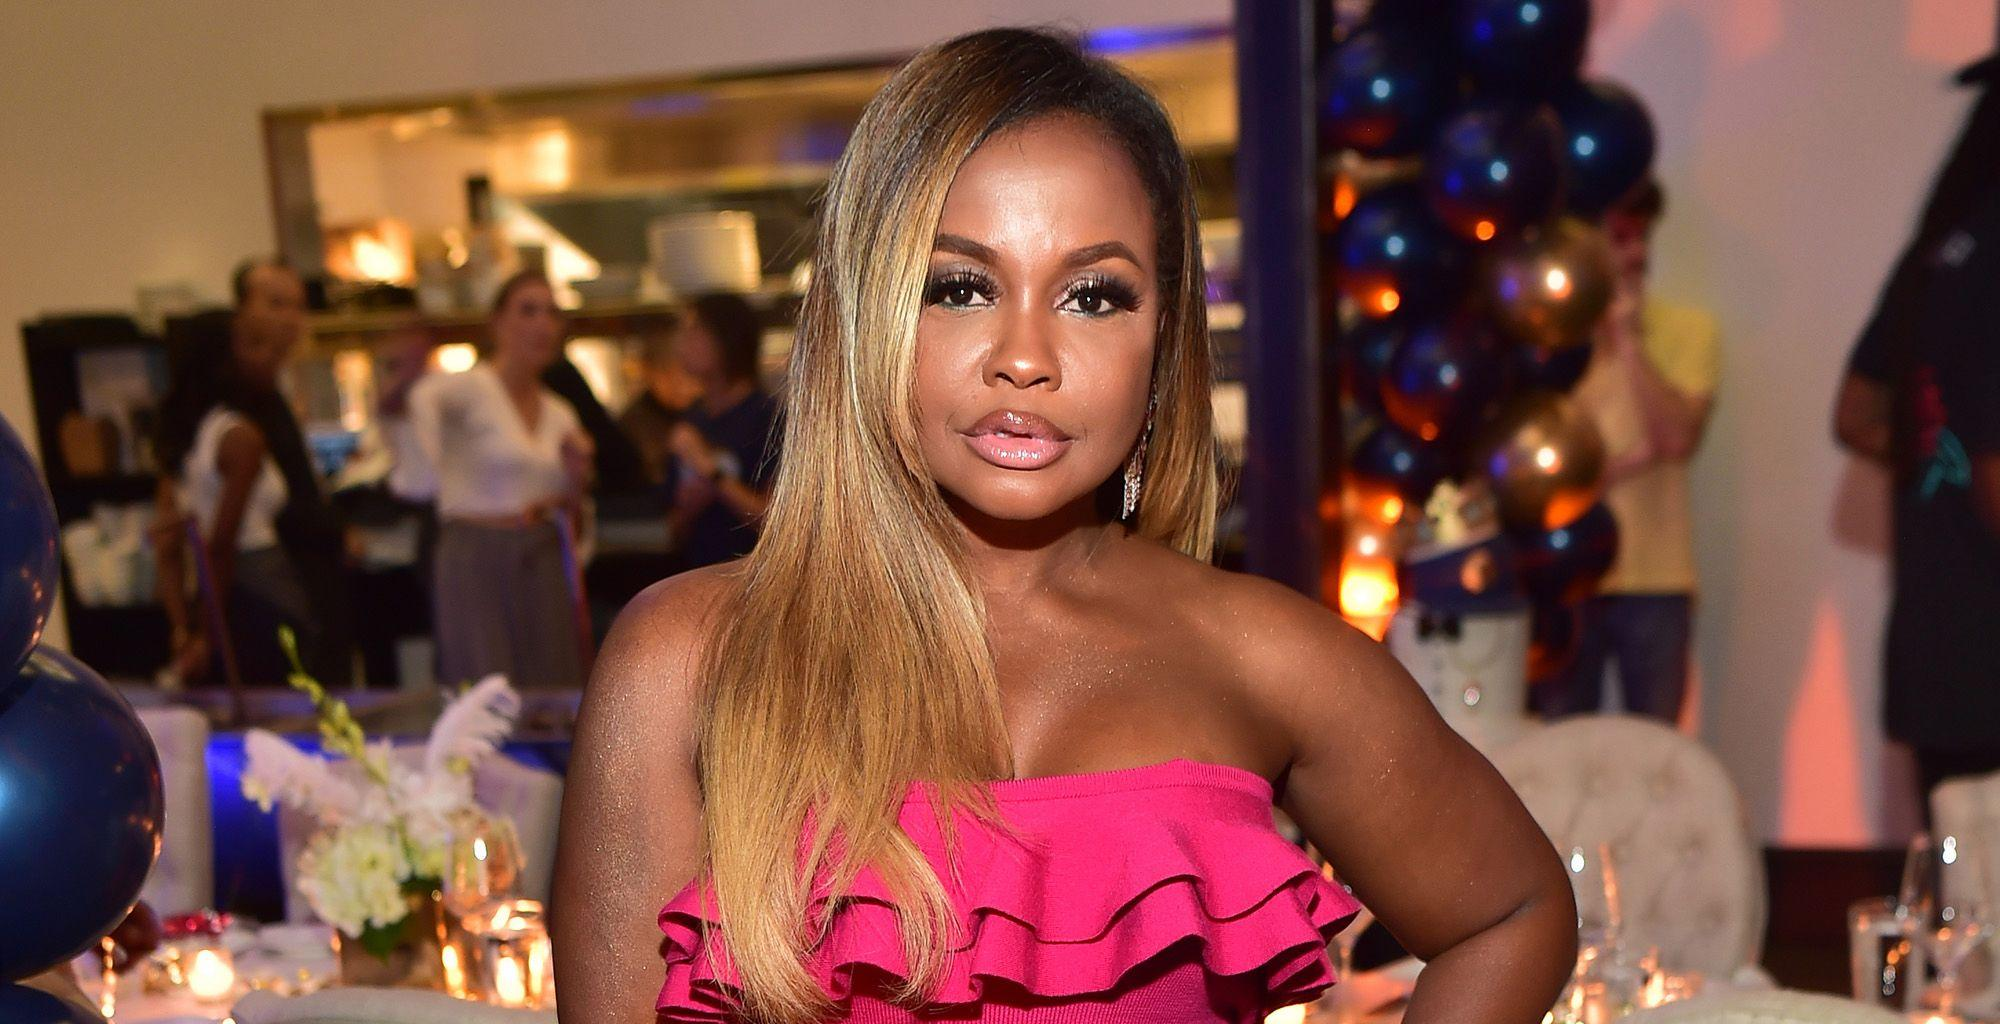 Phaedra Parks' Latest Post Triggers A Debate In The Comments